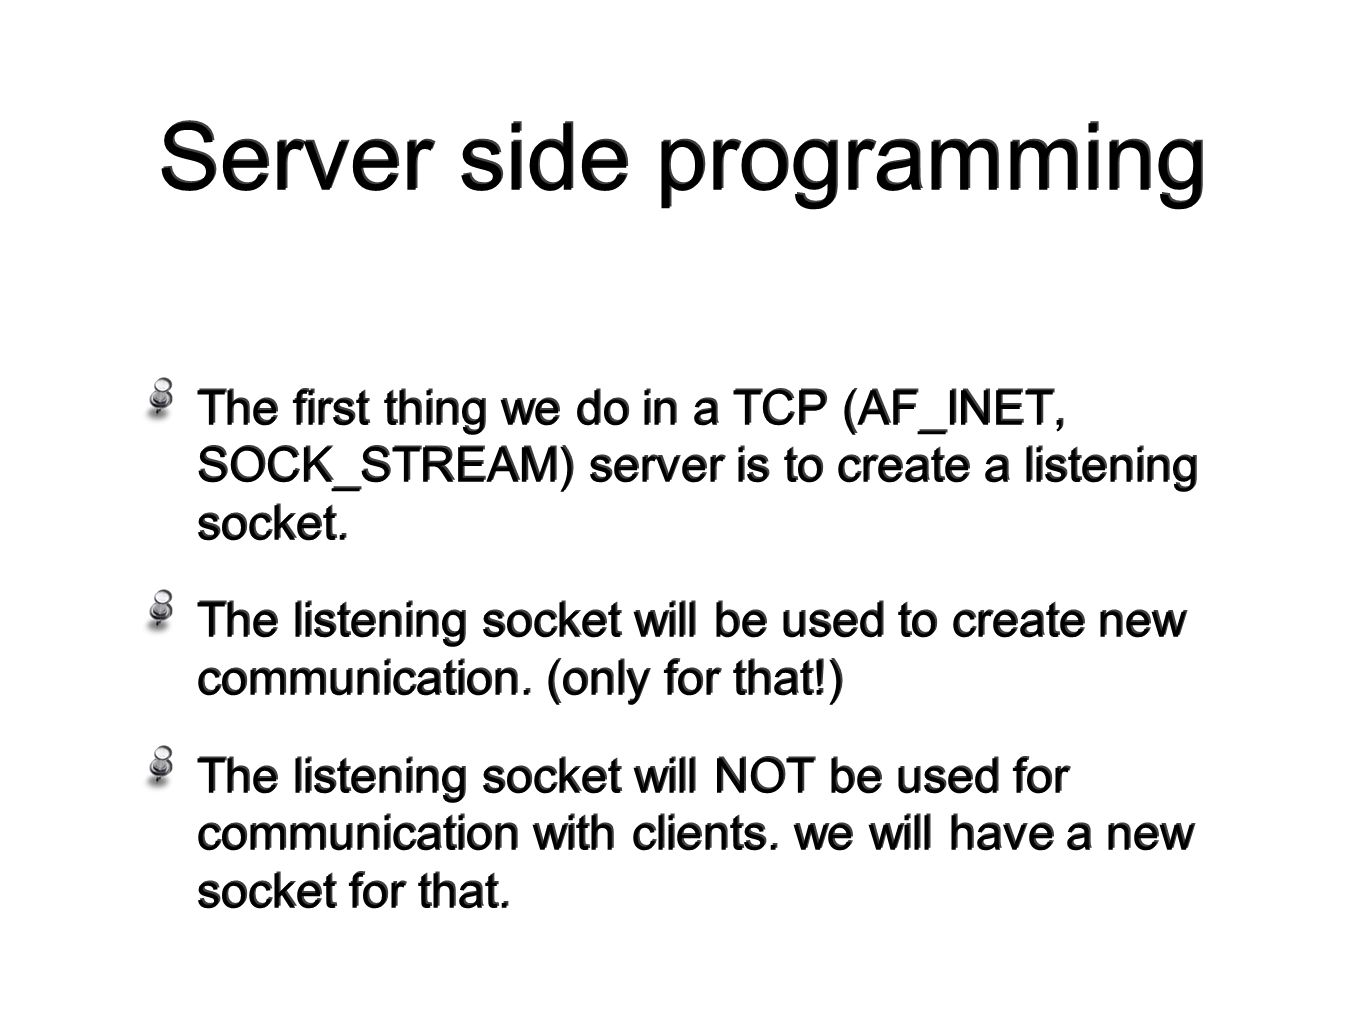 Server side programming The first thing we do in a TCP (AF_INET, SOCK_STREAM) server is to create a listening socket.